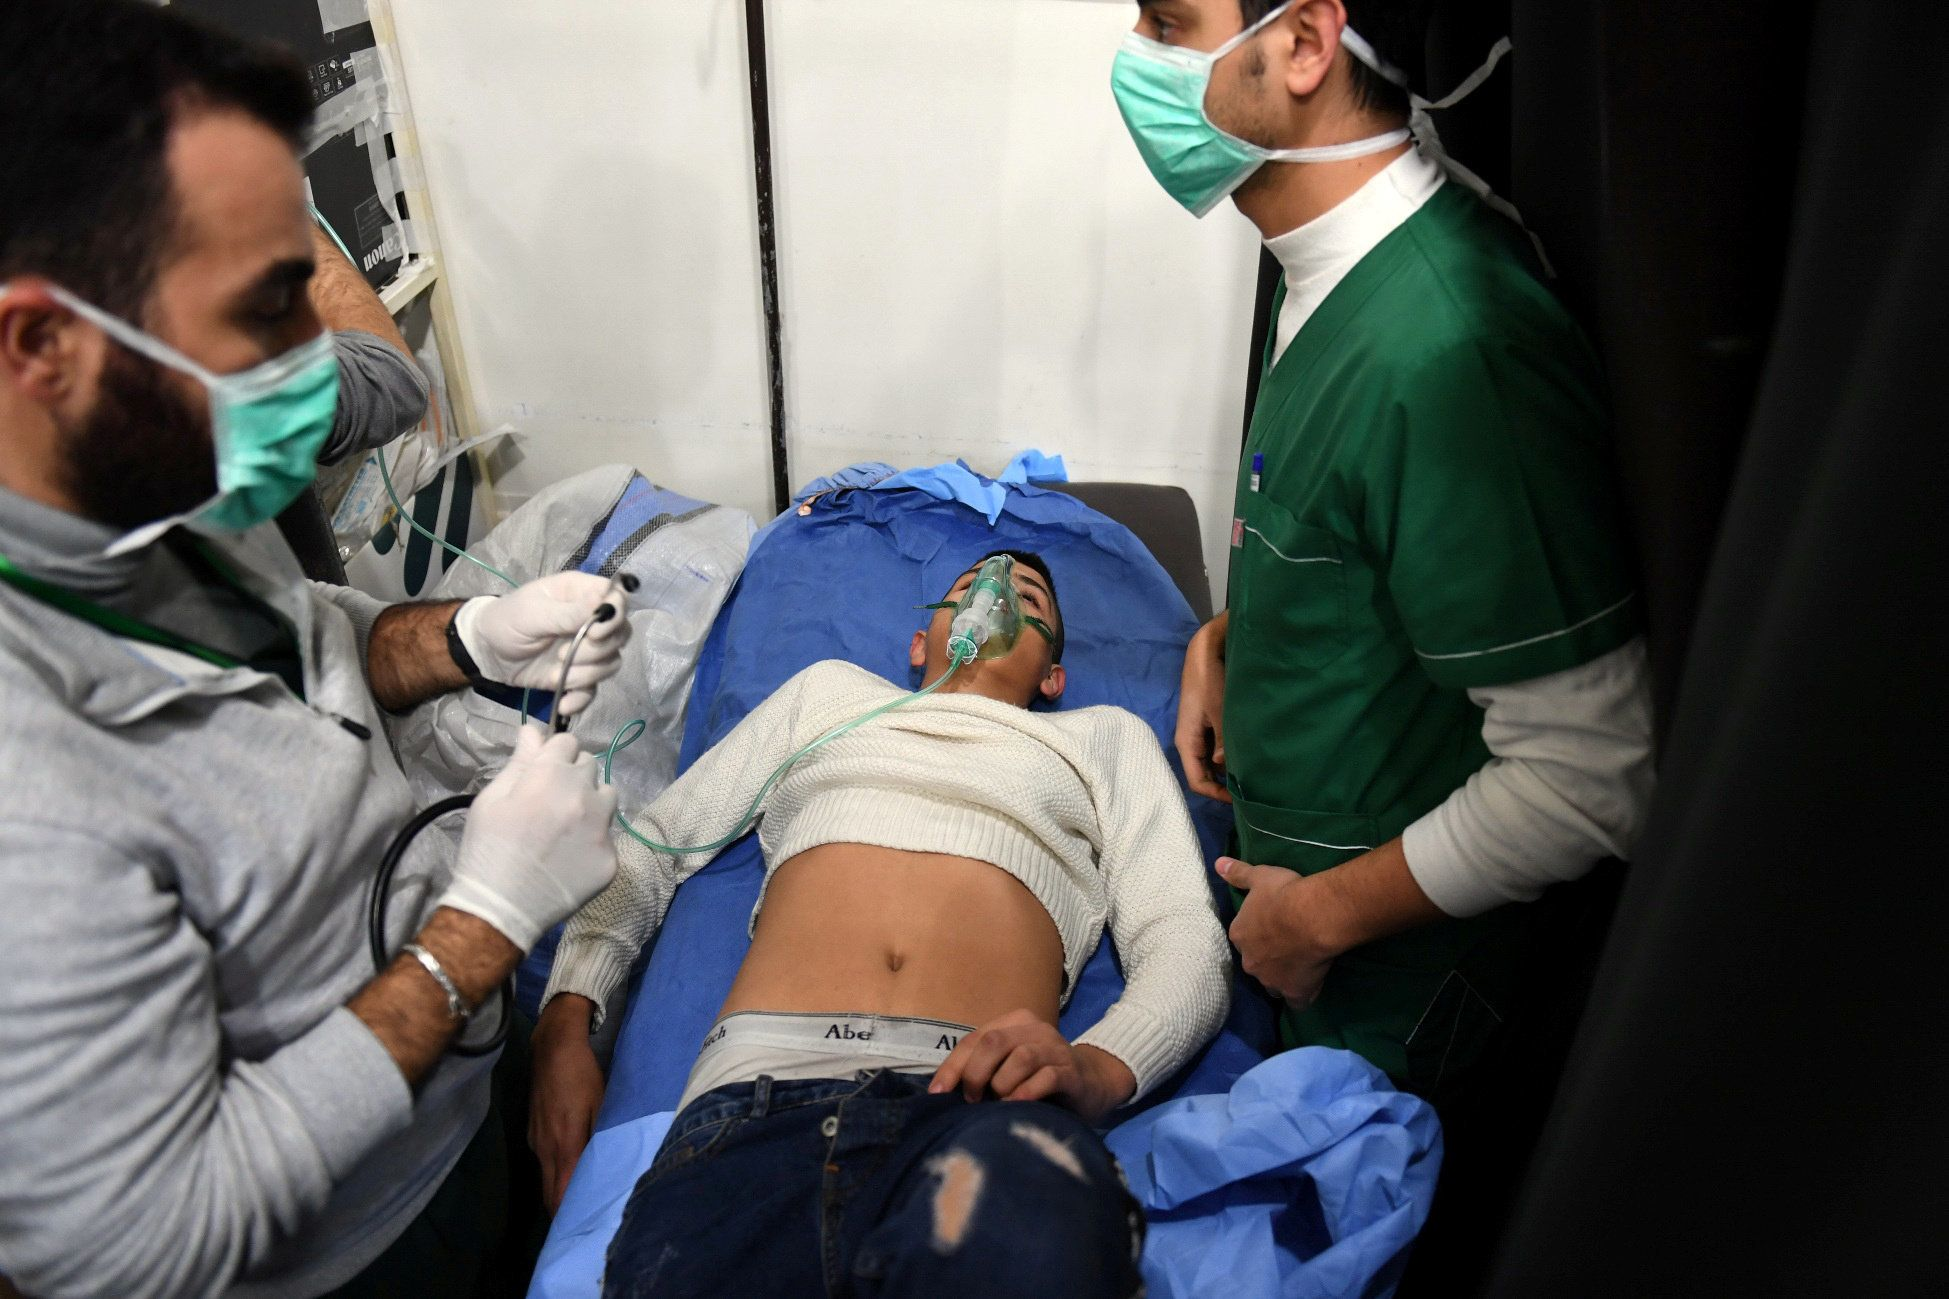 A man breathes through an oxygen mask inside a hospital after what the Syrian state media said was a suspected toxic gas attack in Aleppo, Syria November 24, 2018. Picture taken November 24, 2018. SANA/Handout via REUTERS ATTENTION EDITORS - THIS IMAGE WAS PROVIDED BY A THIRD PARTY. REUTERS IS UNABLE TO INDEPENDENTLY VERIFY THIS IMAGE